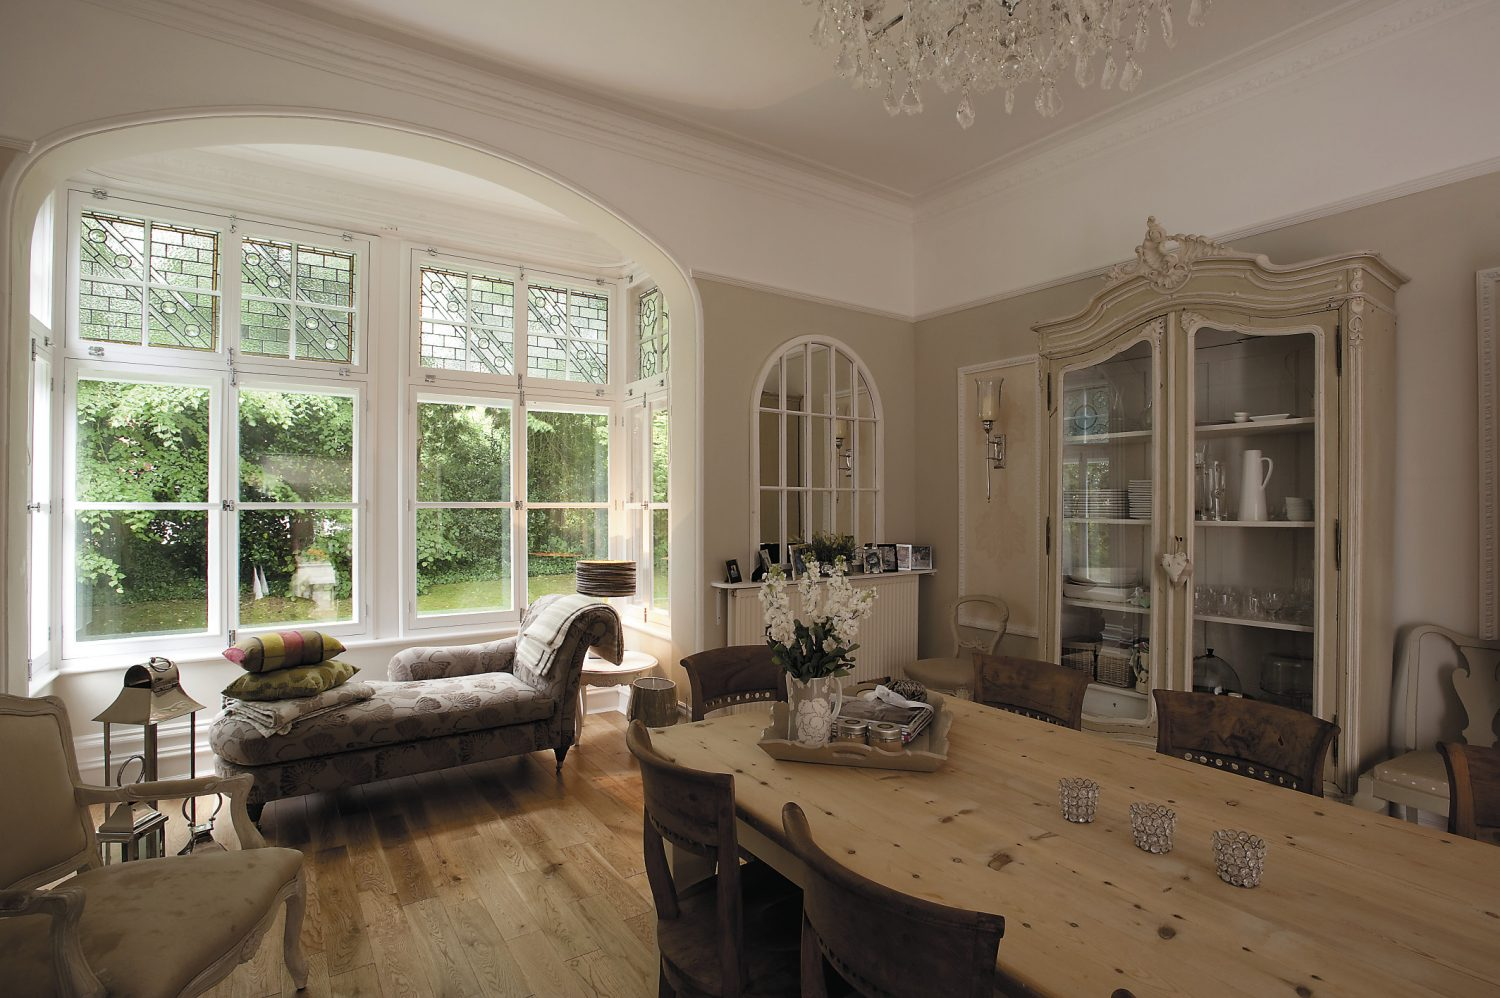 The unusual dining chairs are from Blooms in Southborough